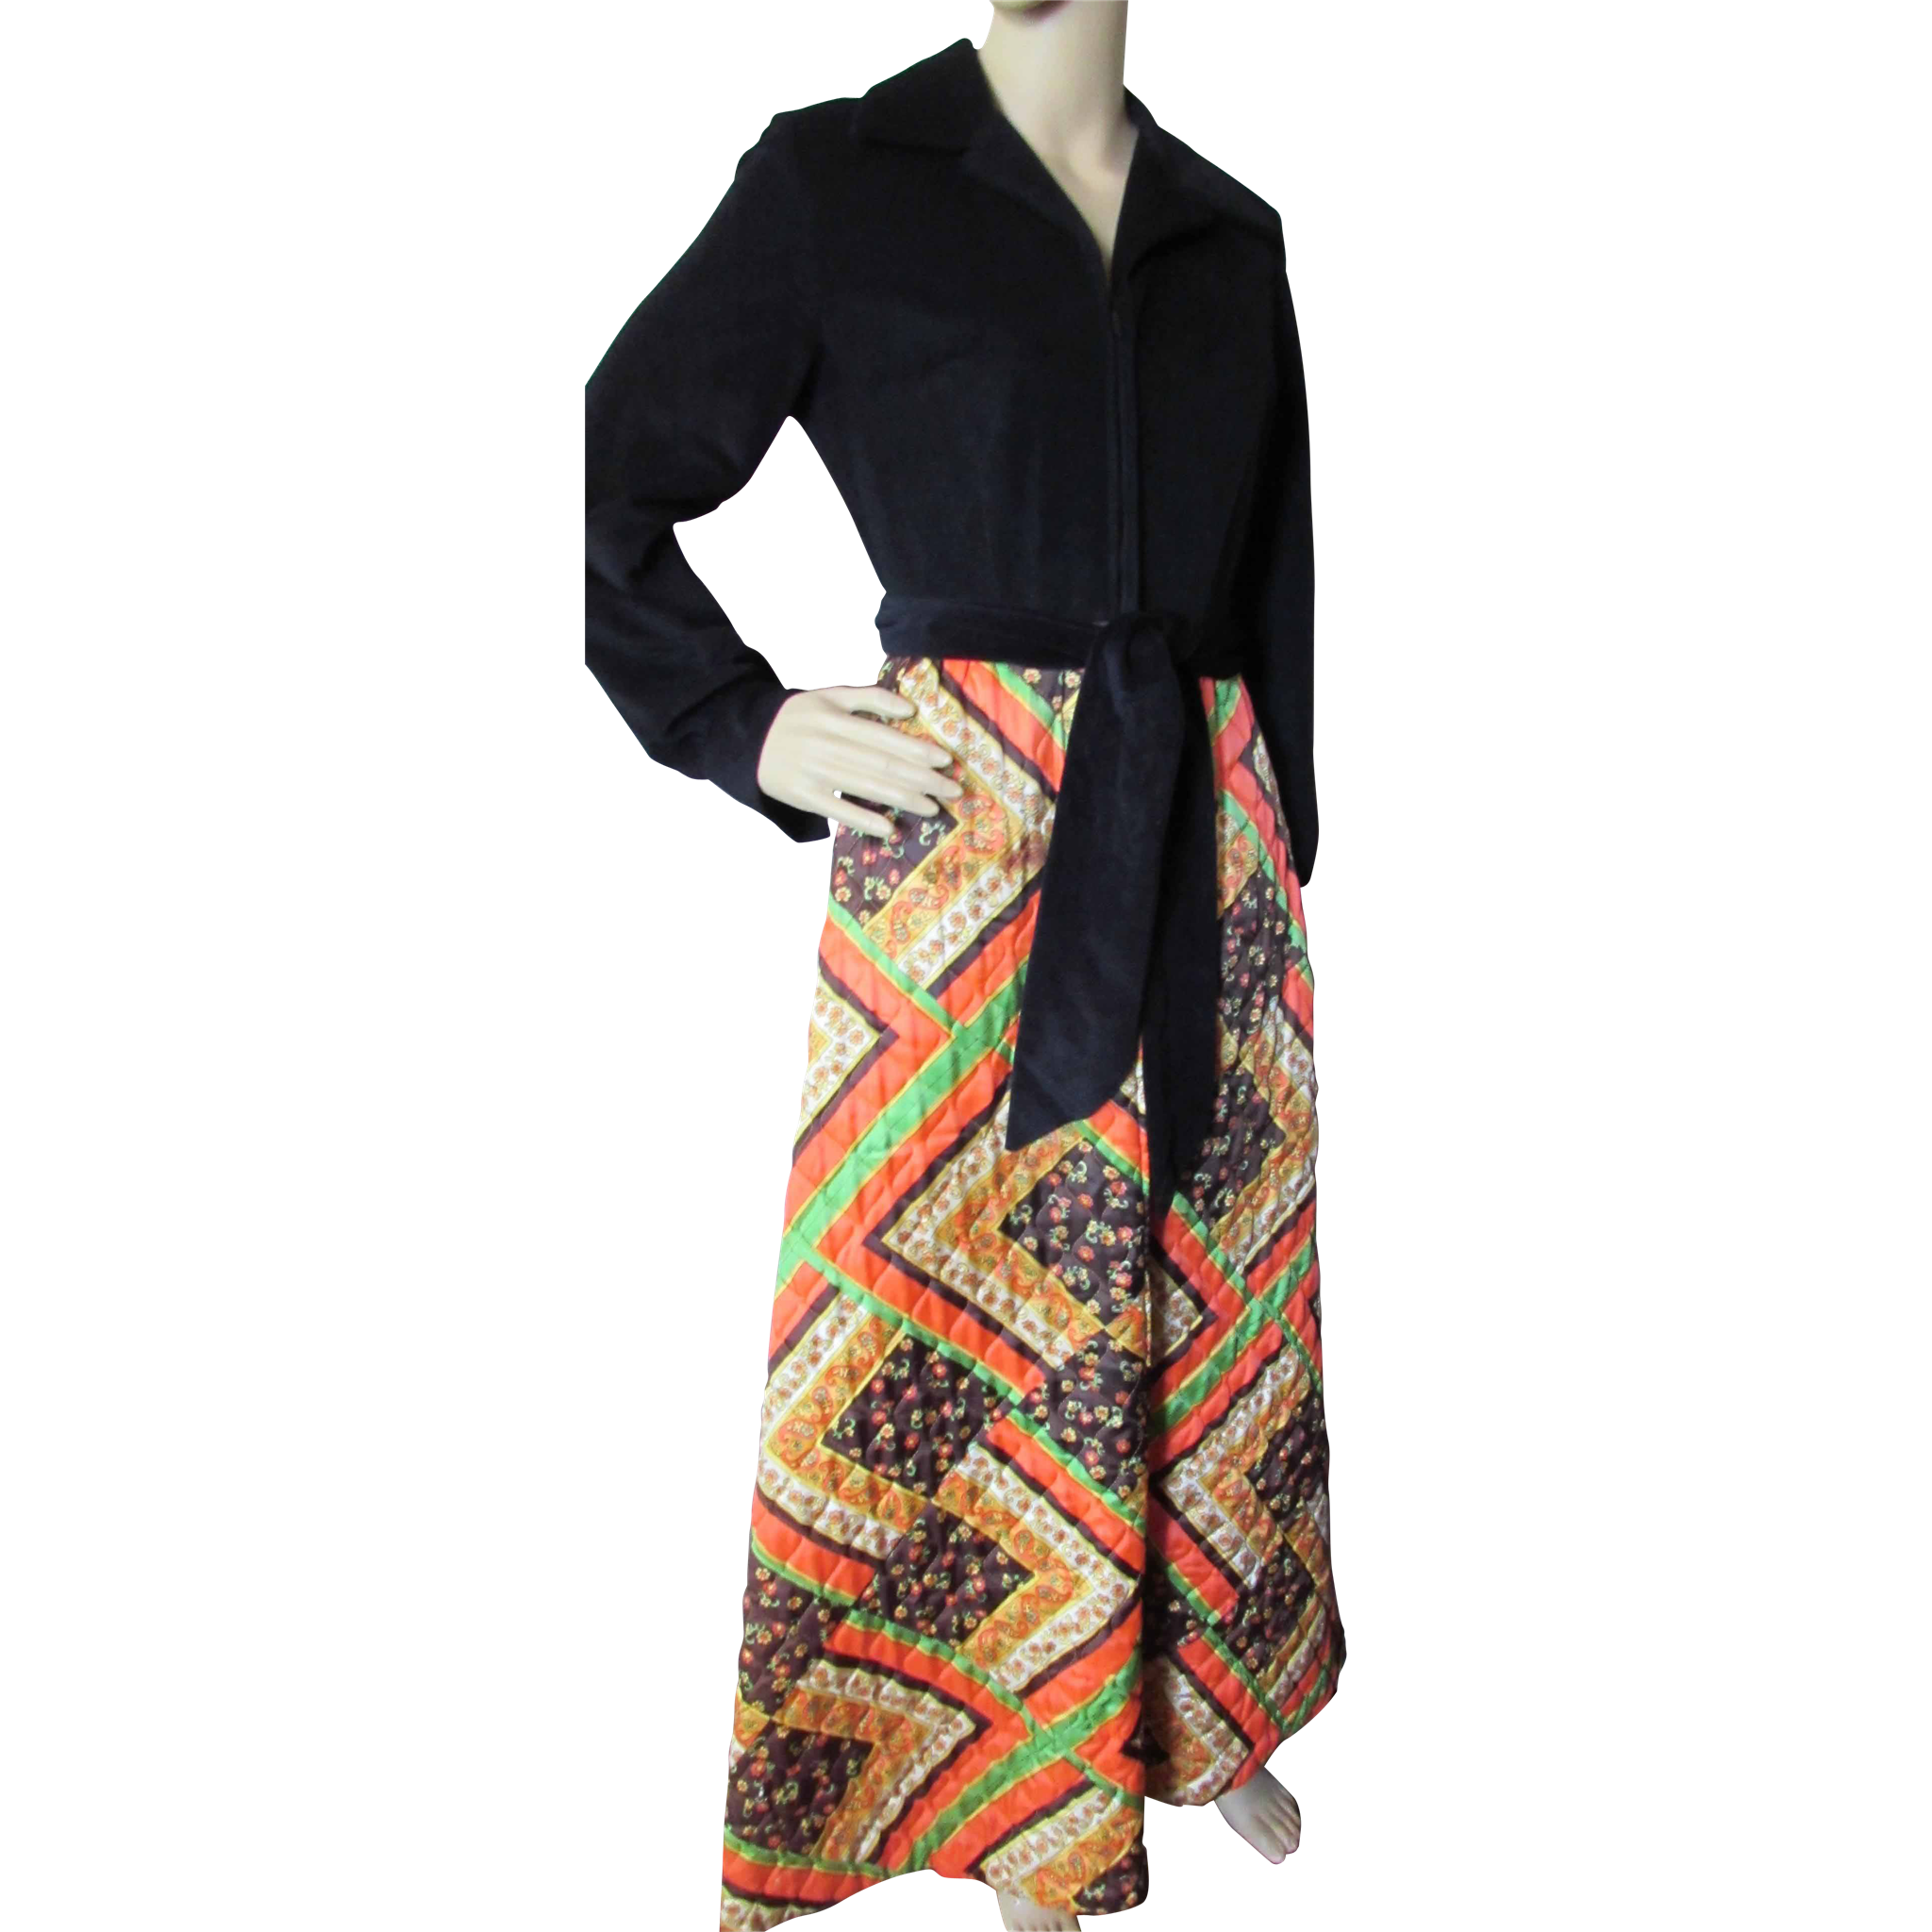 1970 Style Lounge Outfit in Black Velour and Patchwork Quilted Skirt Evelyn Pearson Lounging Apparel